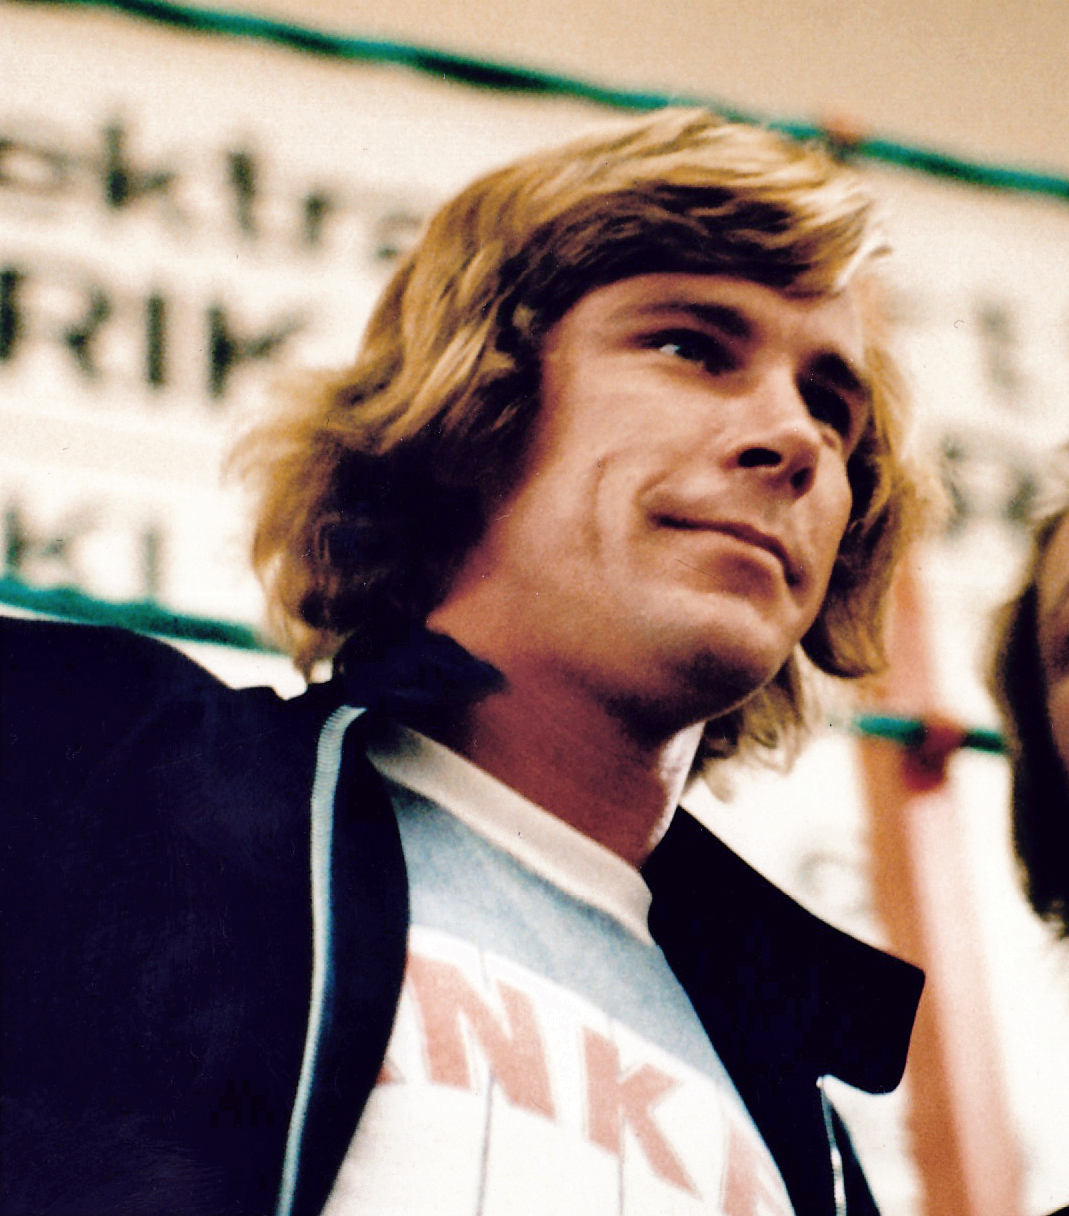 james hunt movie